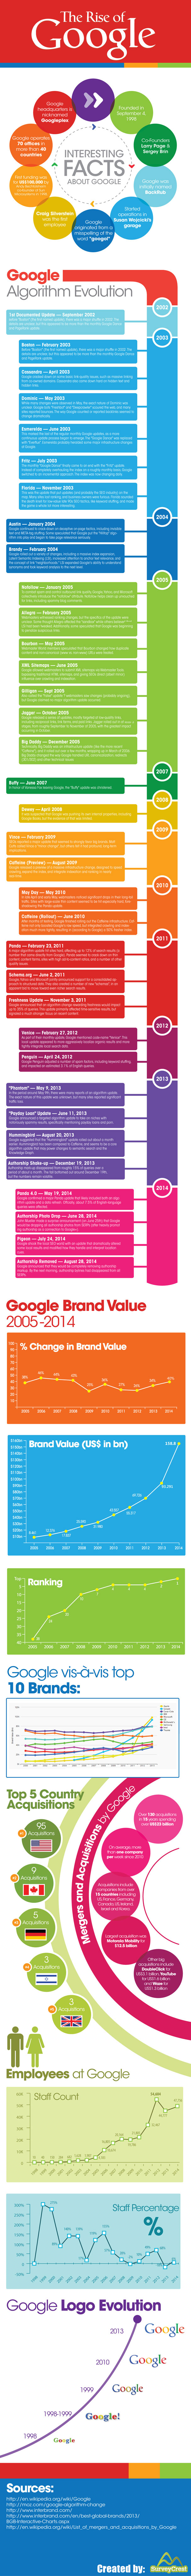 Infographic The Rise of Mighty Google